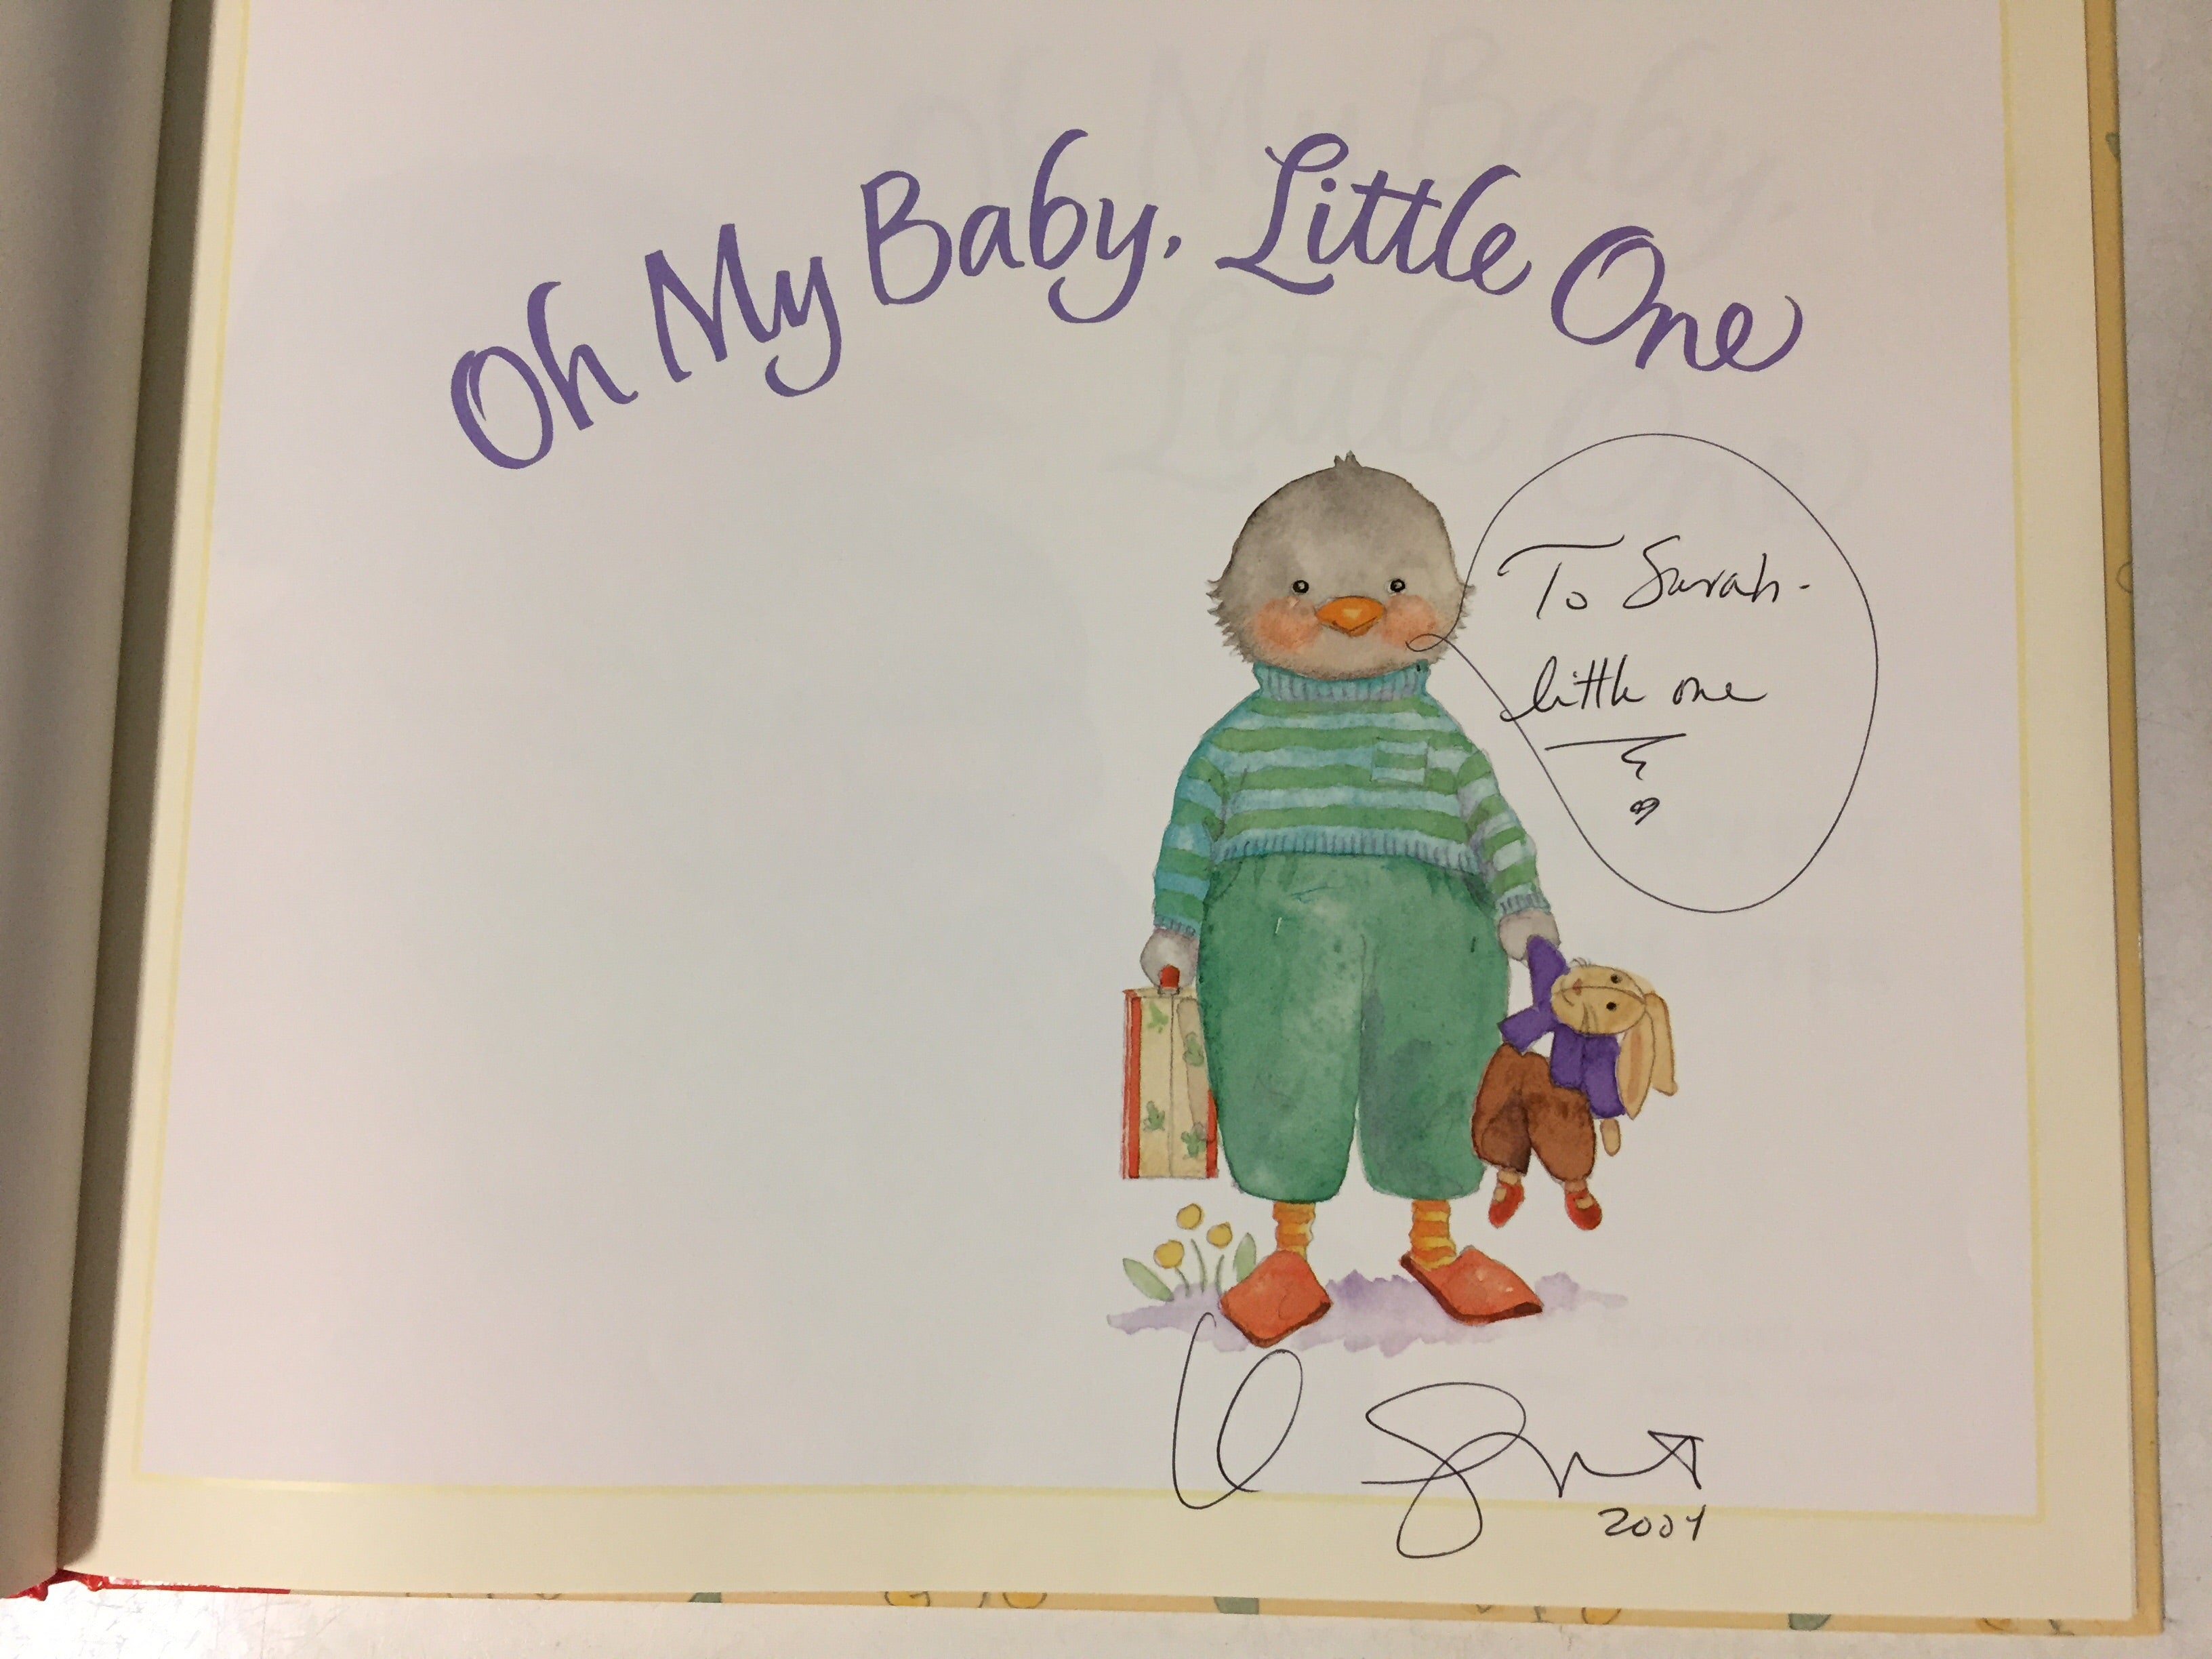 Oh My Baby, Little One - Slickcatbooks